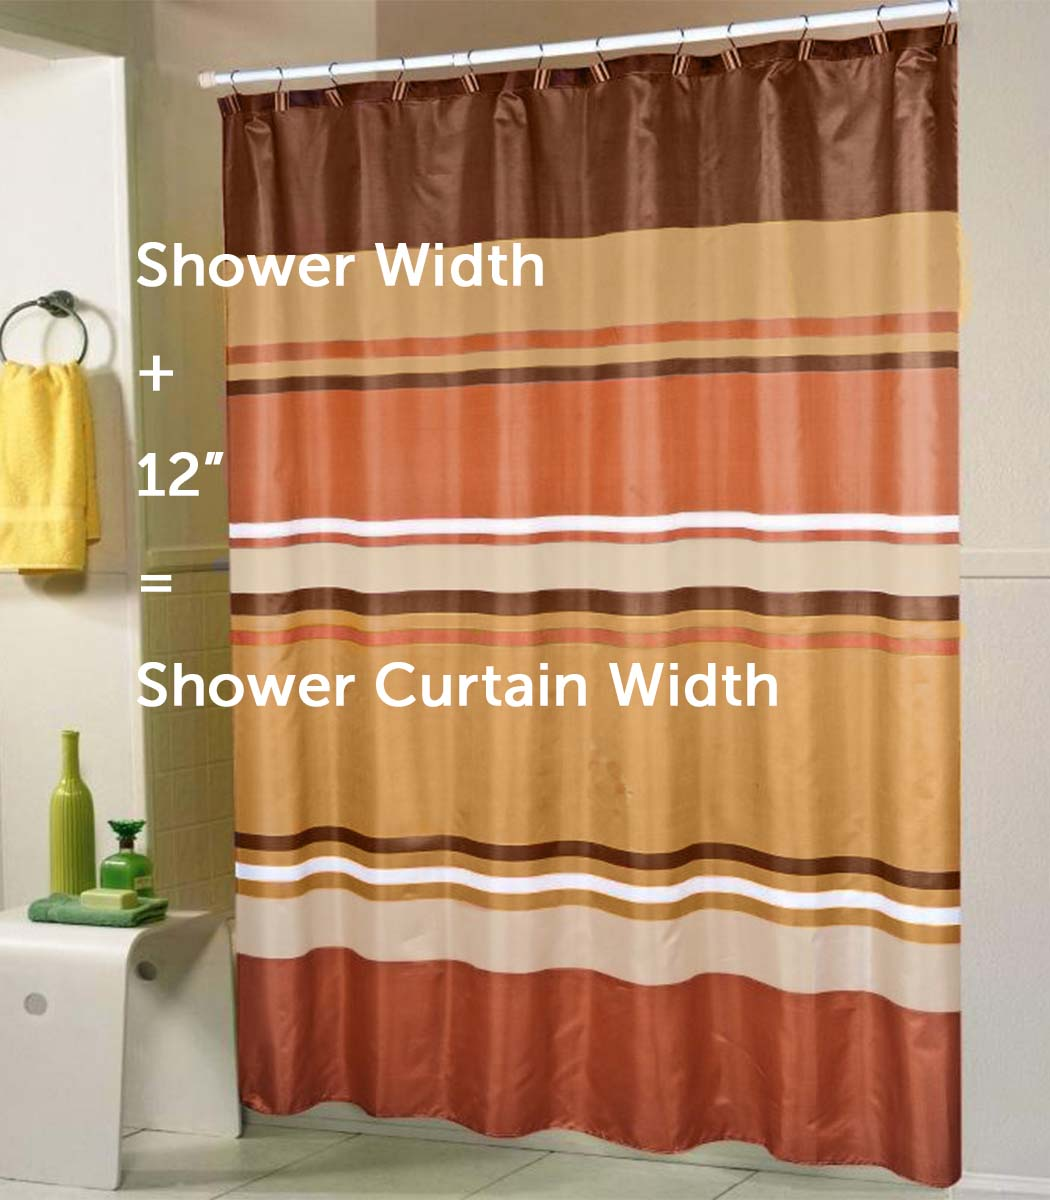 a standard shower curtain size guide linen store. Black Bedroom Furniture Sets. Home Design Ideas